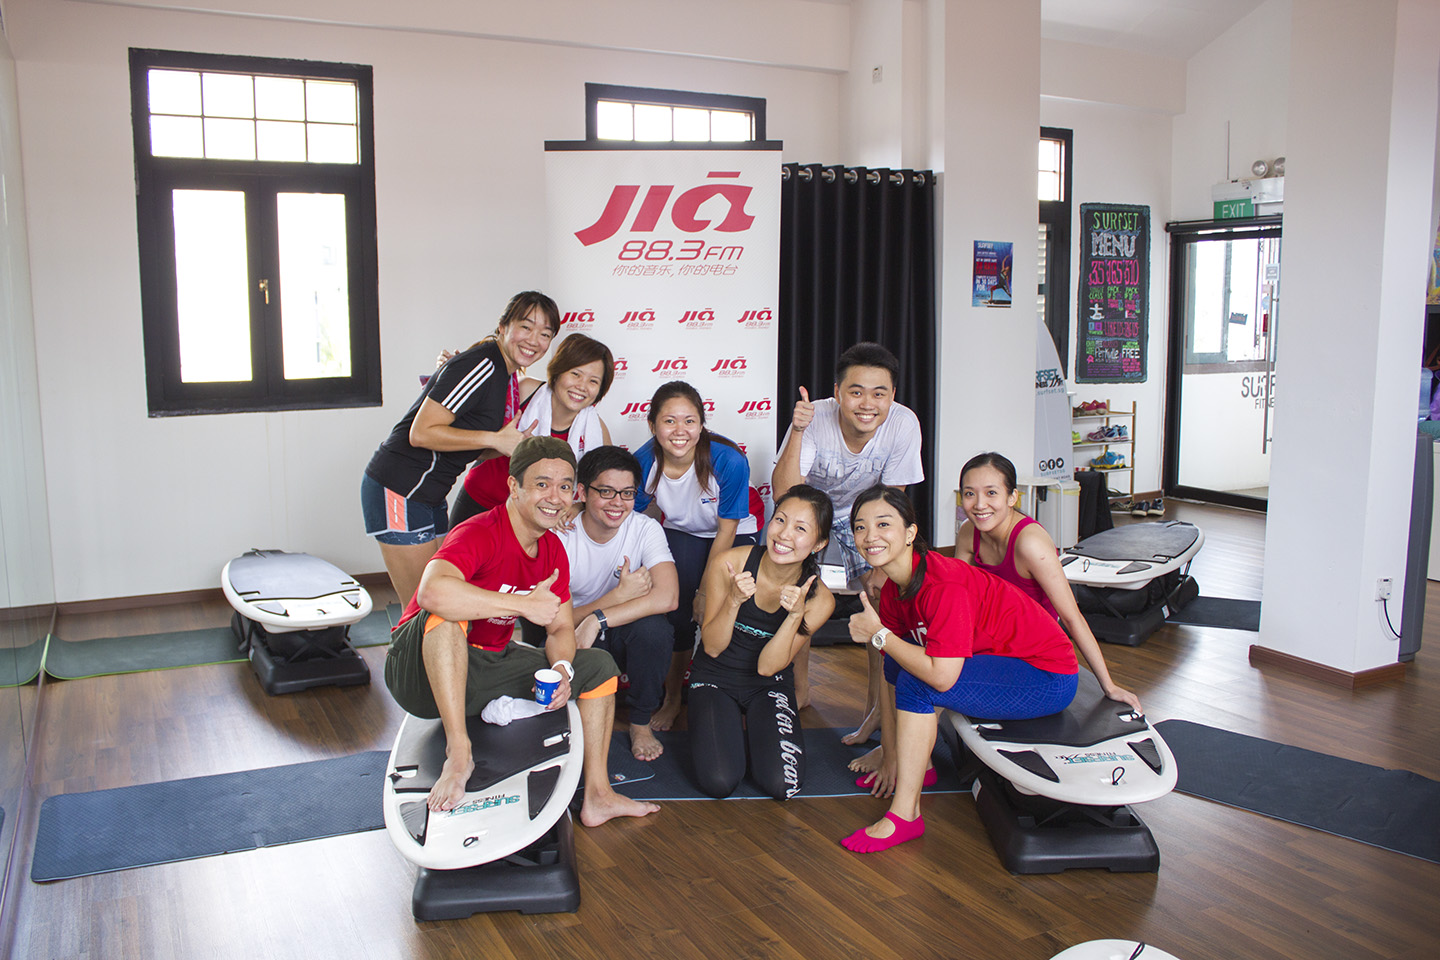 883 jia fm katong surfset fitness class over